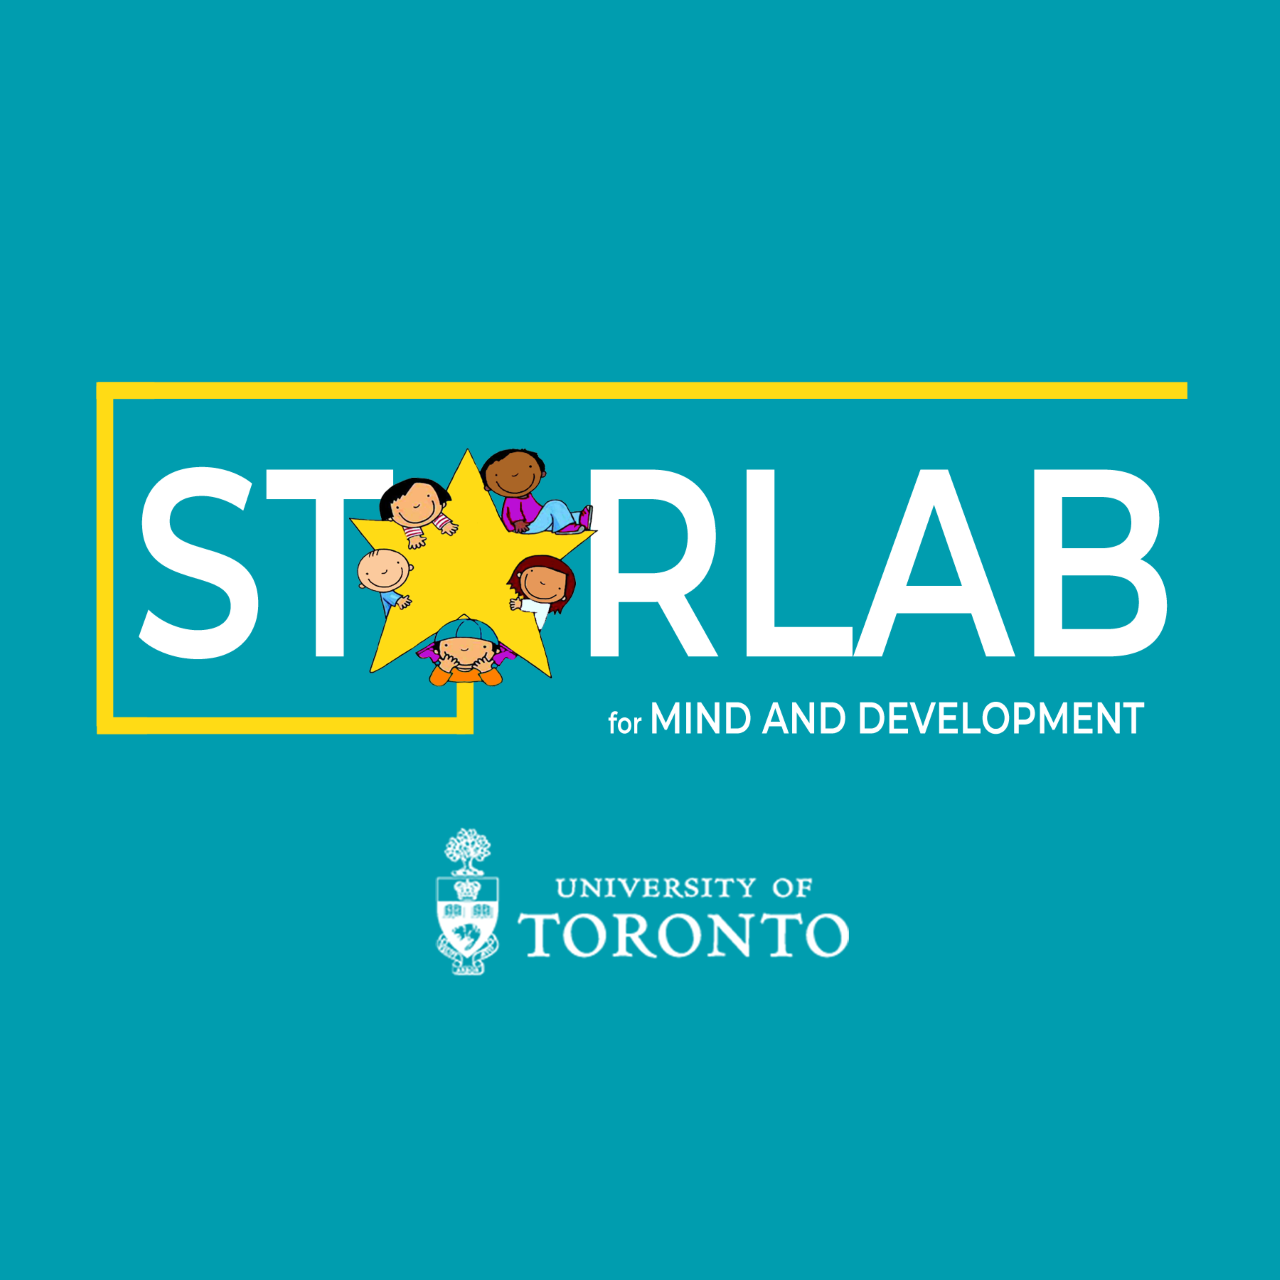 StarLab for Mind and Development